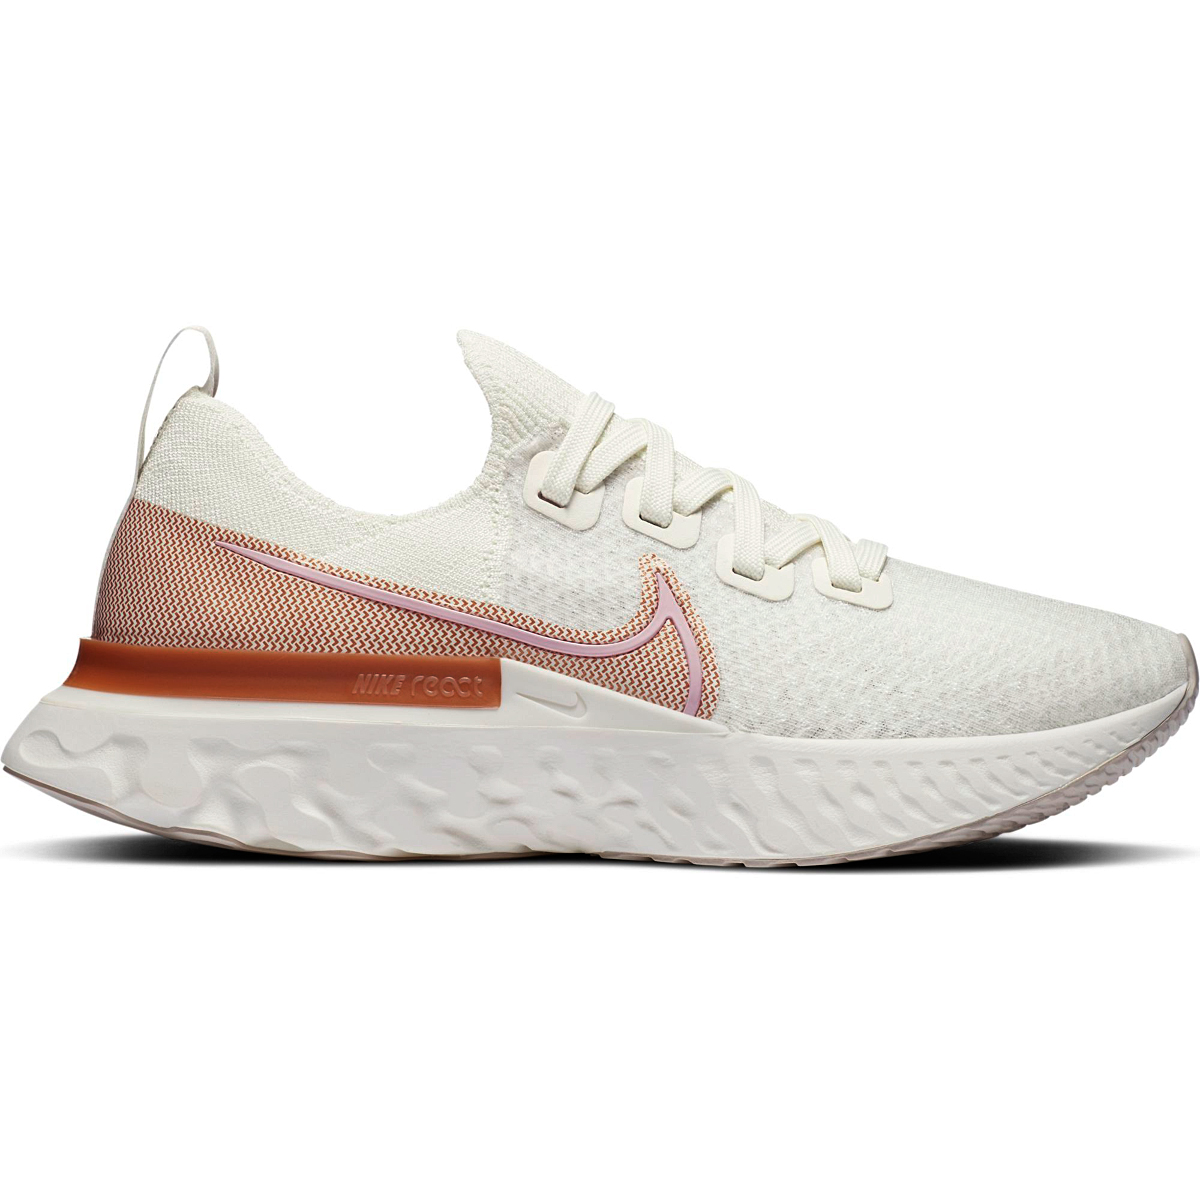 Women's Nike Nike React Infinity Run Flyknit Running Shoe - Color: Sail/Metallic Copper/White/Light Arctic Pink - Size: 5 - Width: Regular, Sail/Metallic Copper/White/Light Arctic Pink, large, image 1